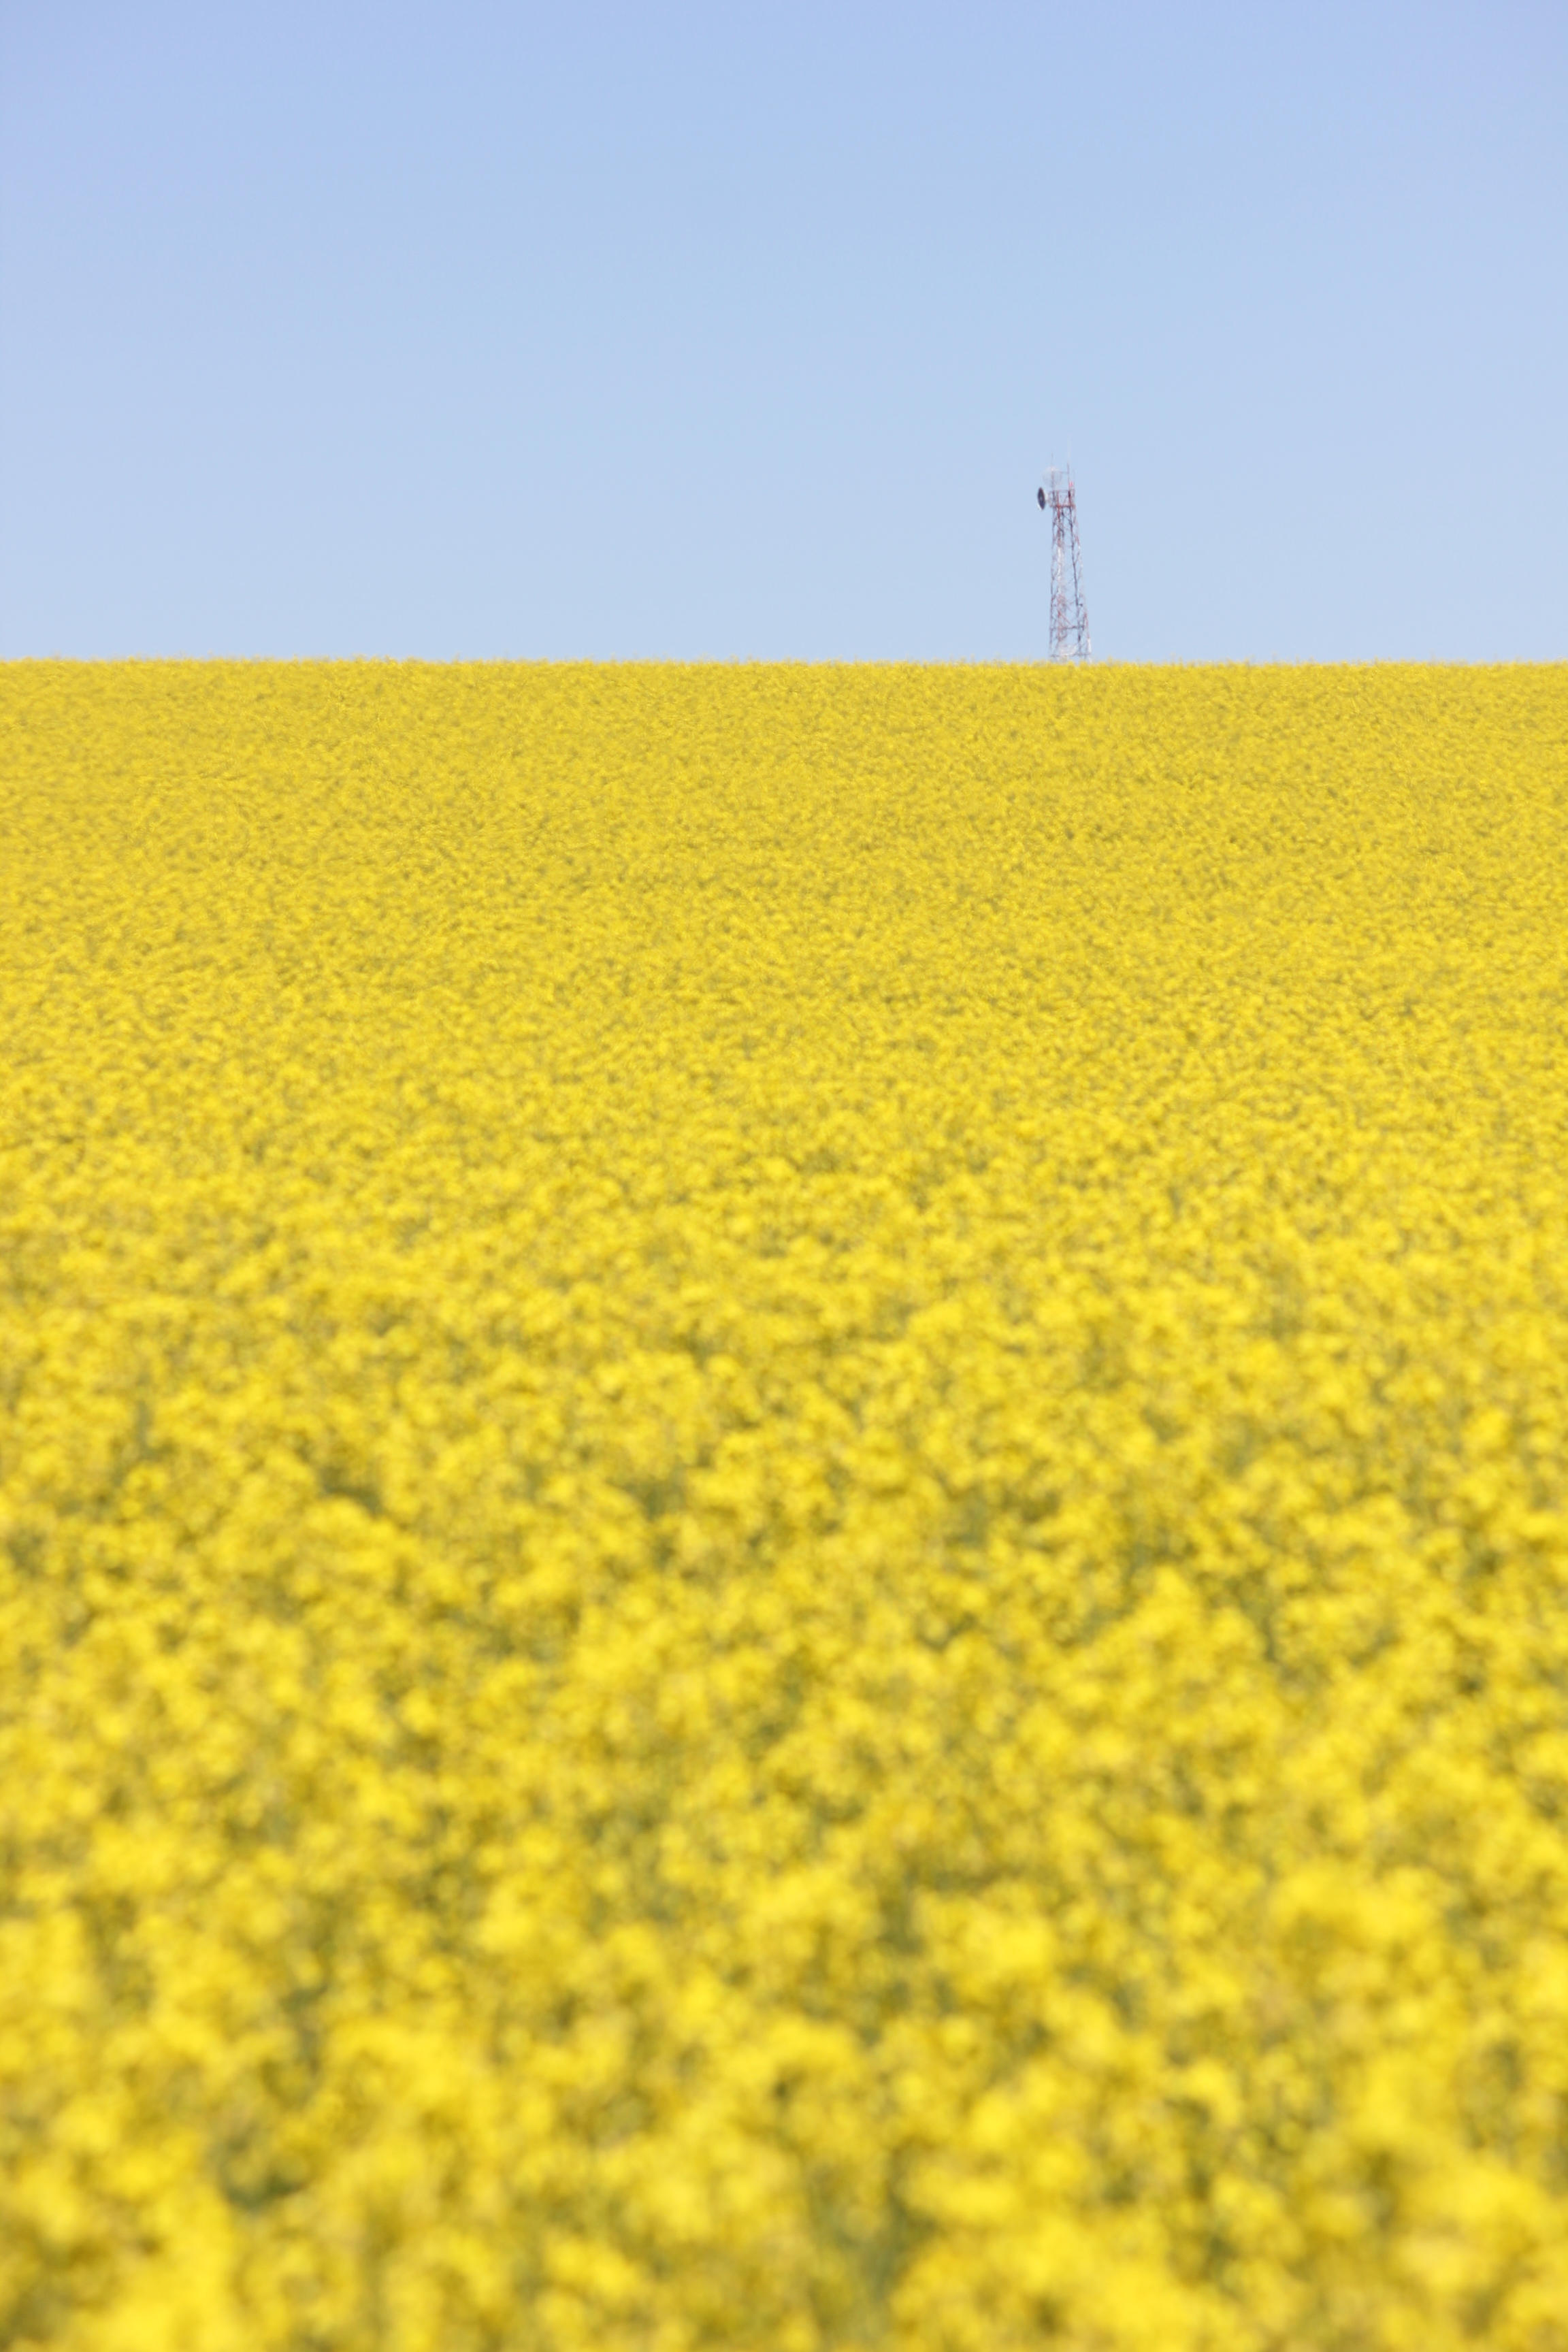 field of yellow flowers | bilbyandbear